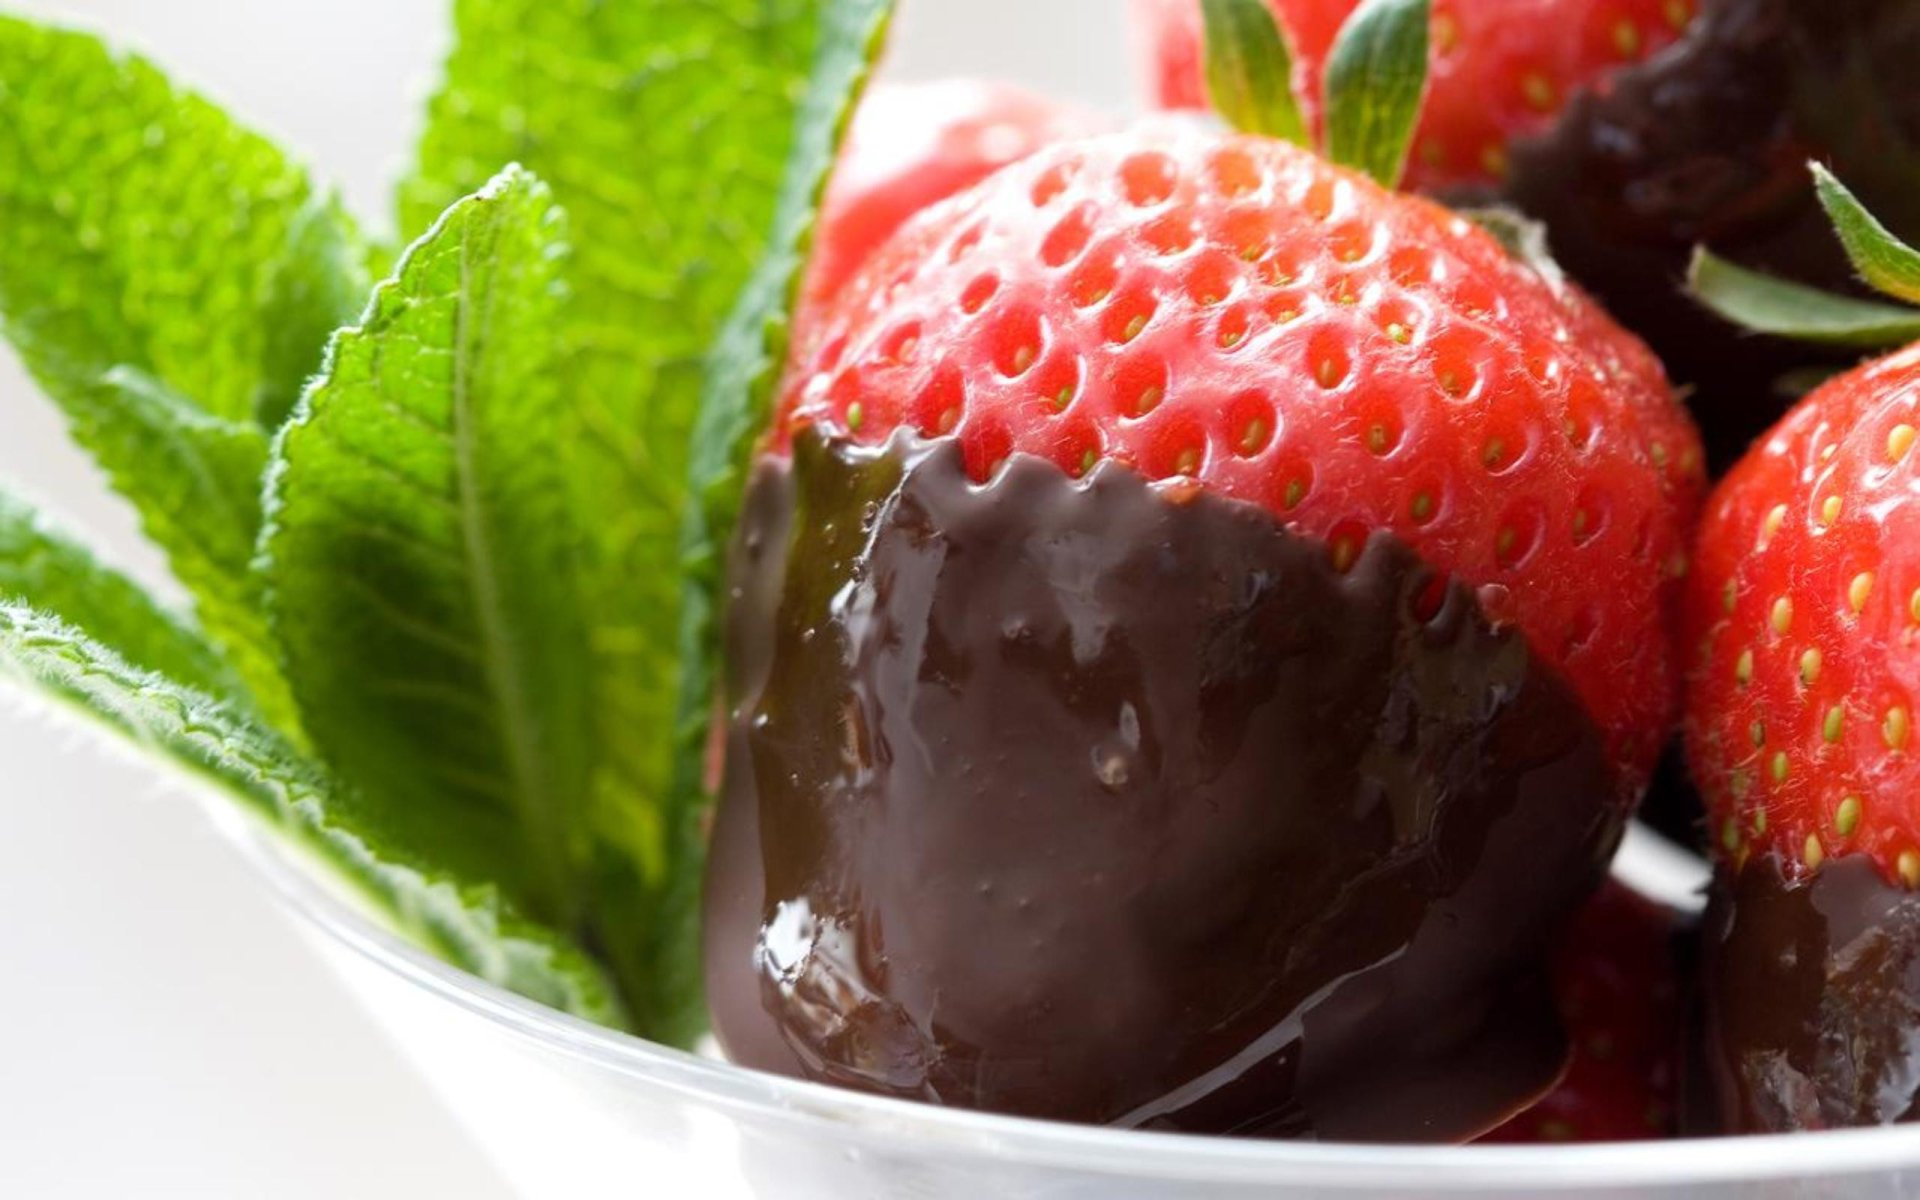 Alimento - Strawberry  Chocolate Sfondo